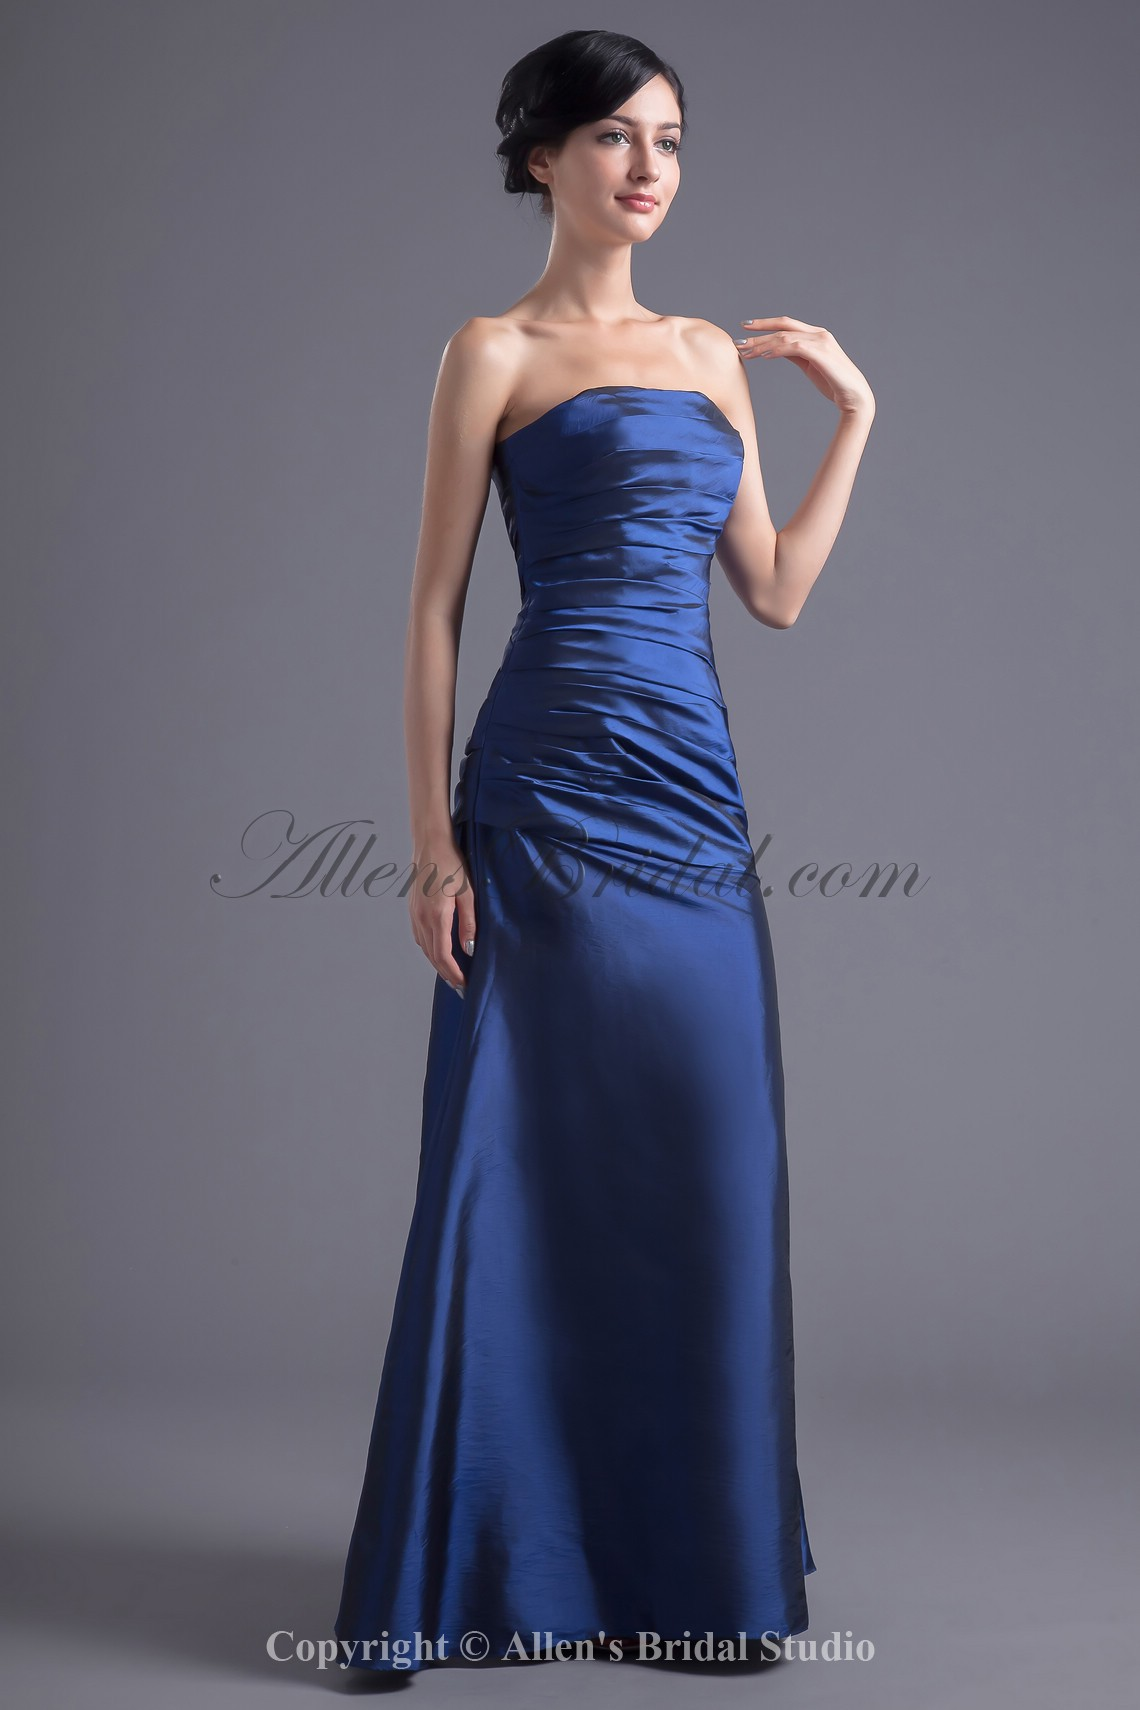 /13-98/taffeta-straless-neckline-a-line-floor-length-directionally-ruched-prom-dress.jpg